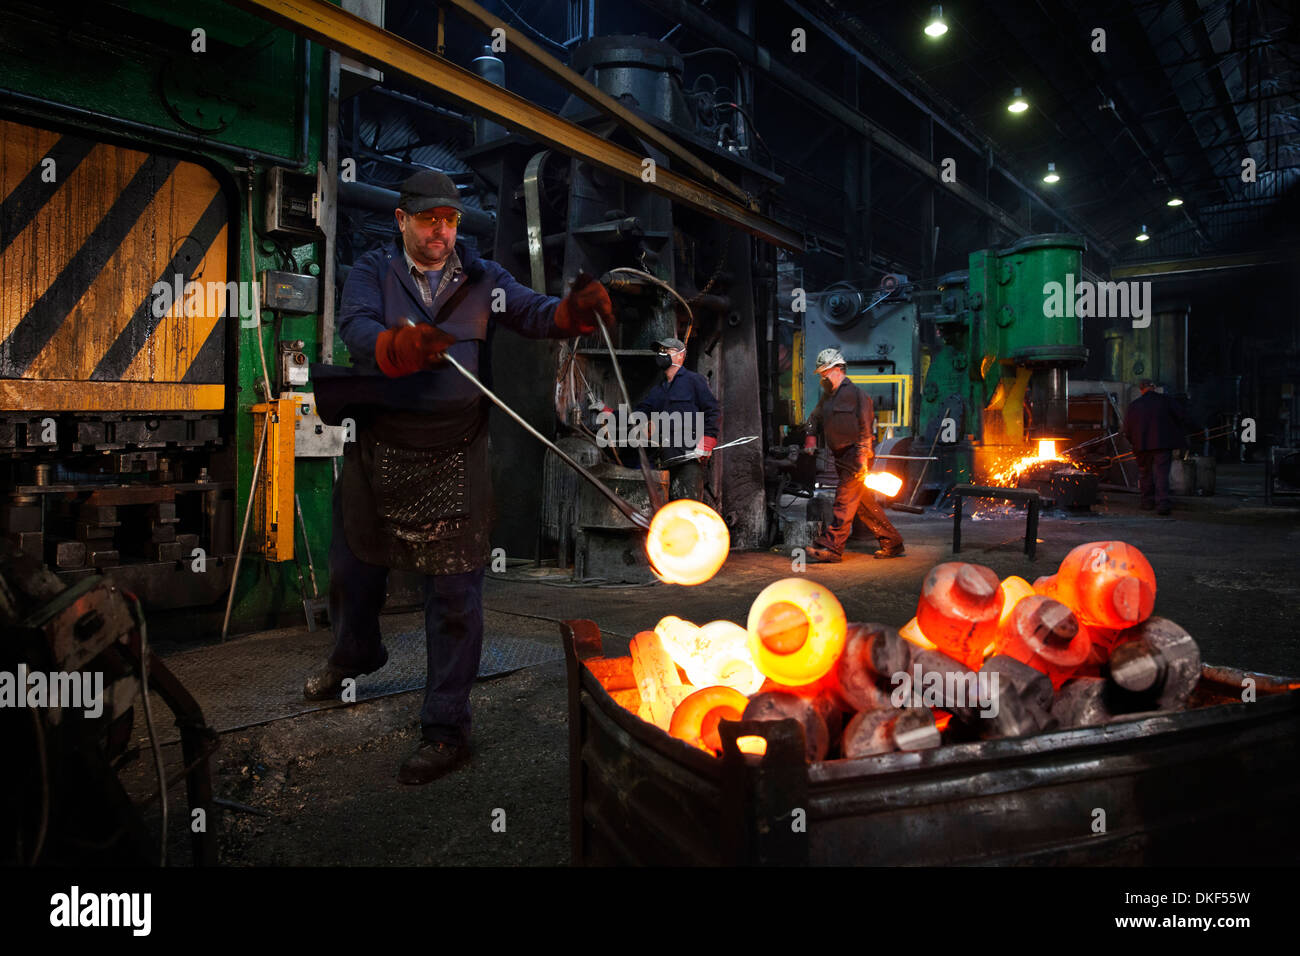 Forge worker swings finished forged component onto pallet as team works in background - Stock Image